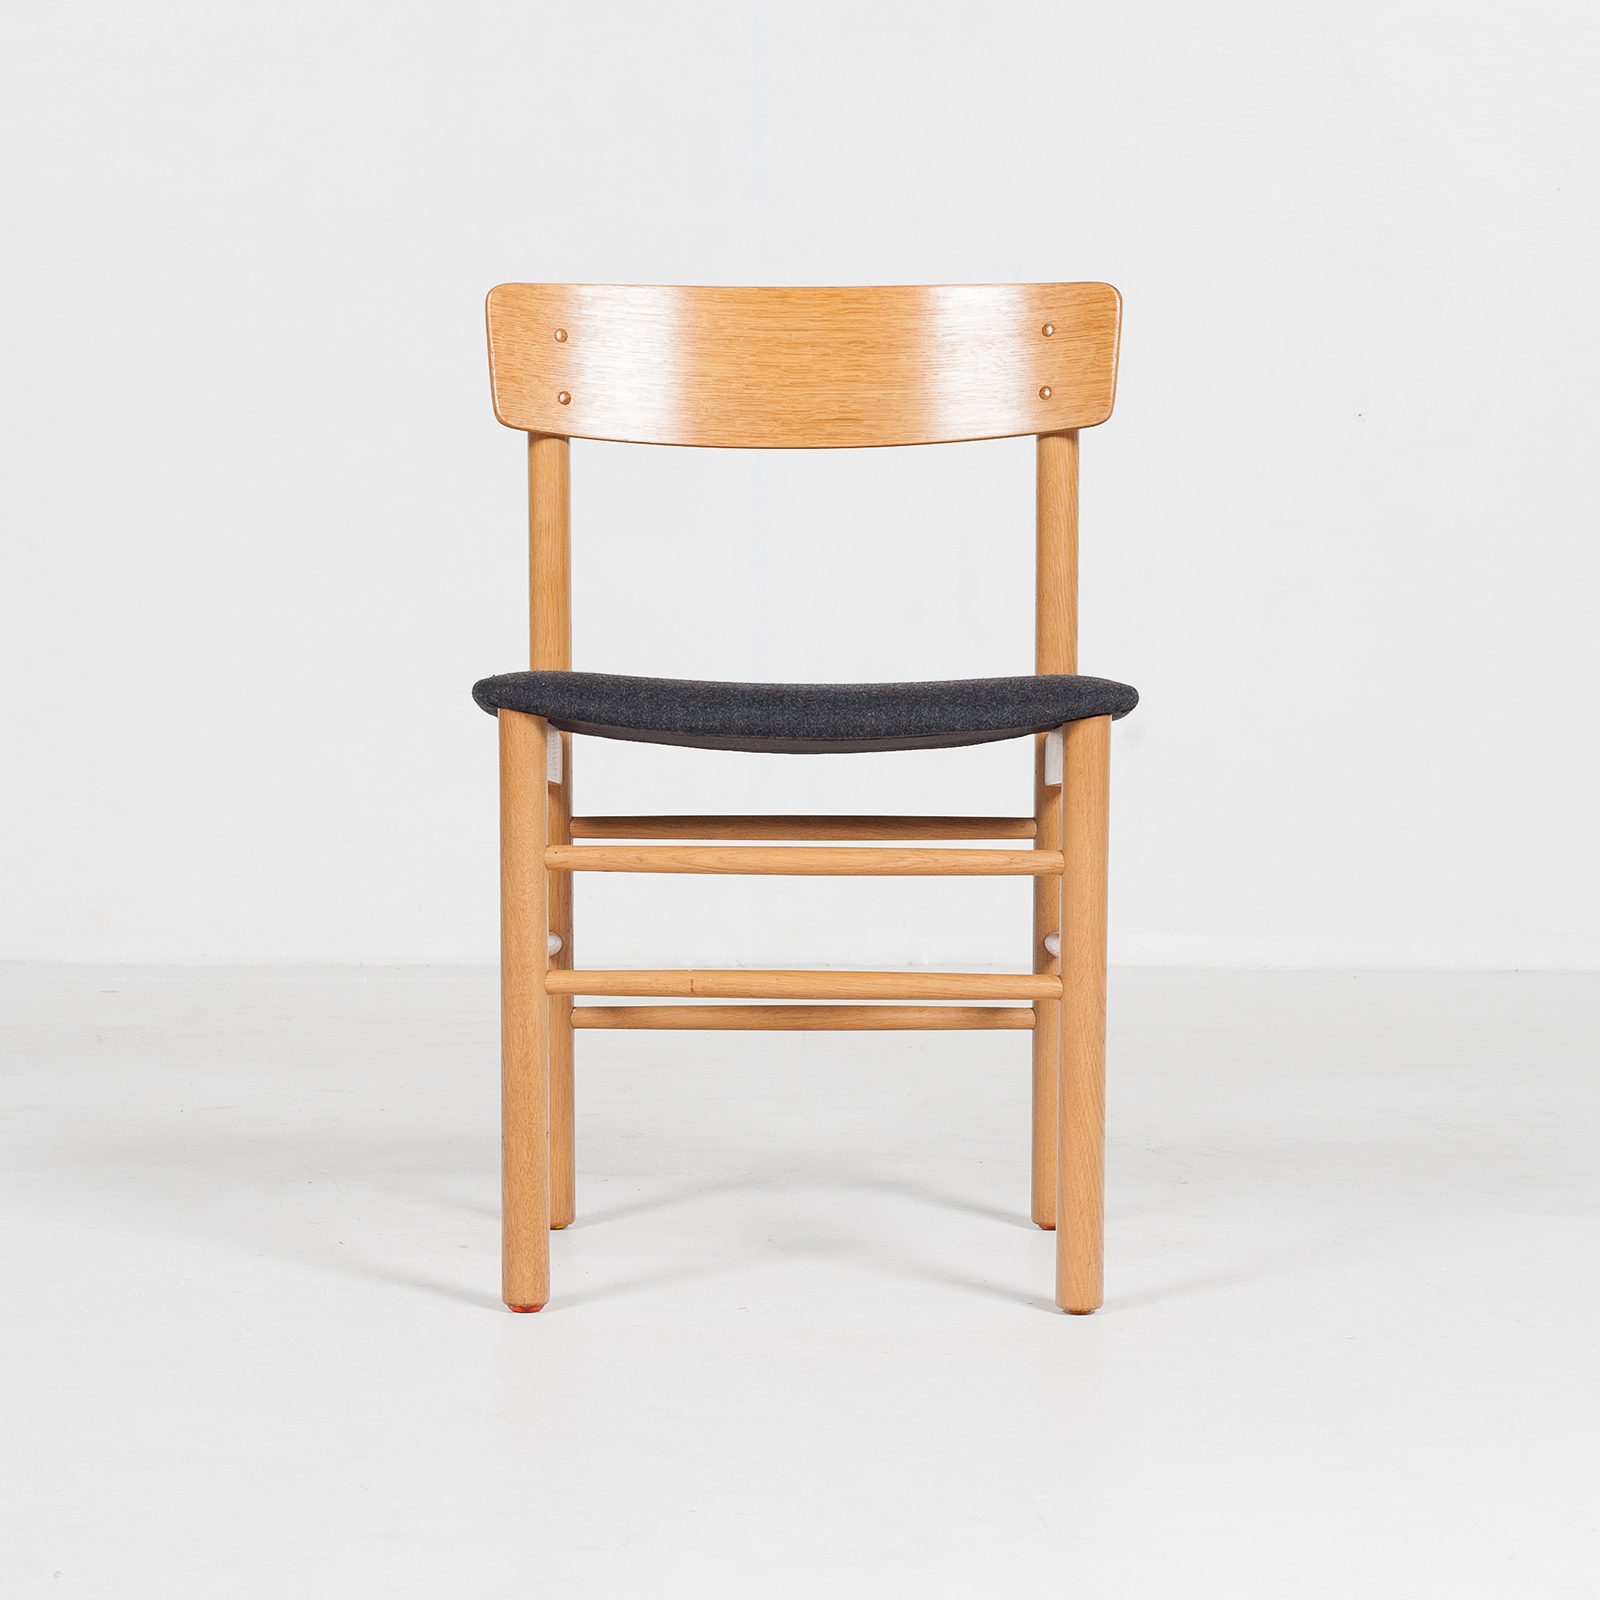 Set Of 4 Shaker Style Dining Chairs By Farstrup In Oak, 1960s, Denmark61